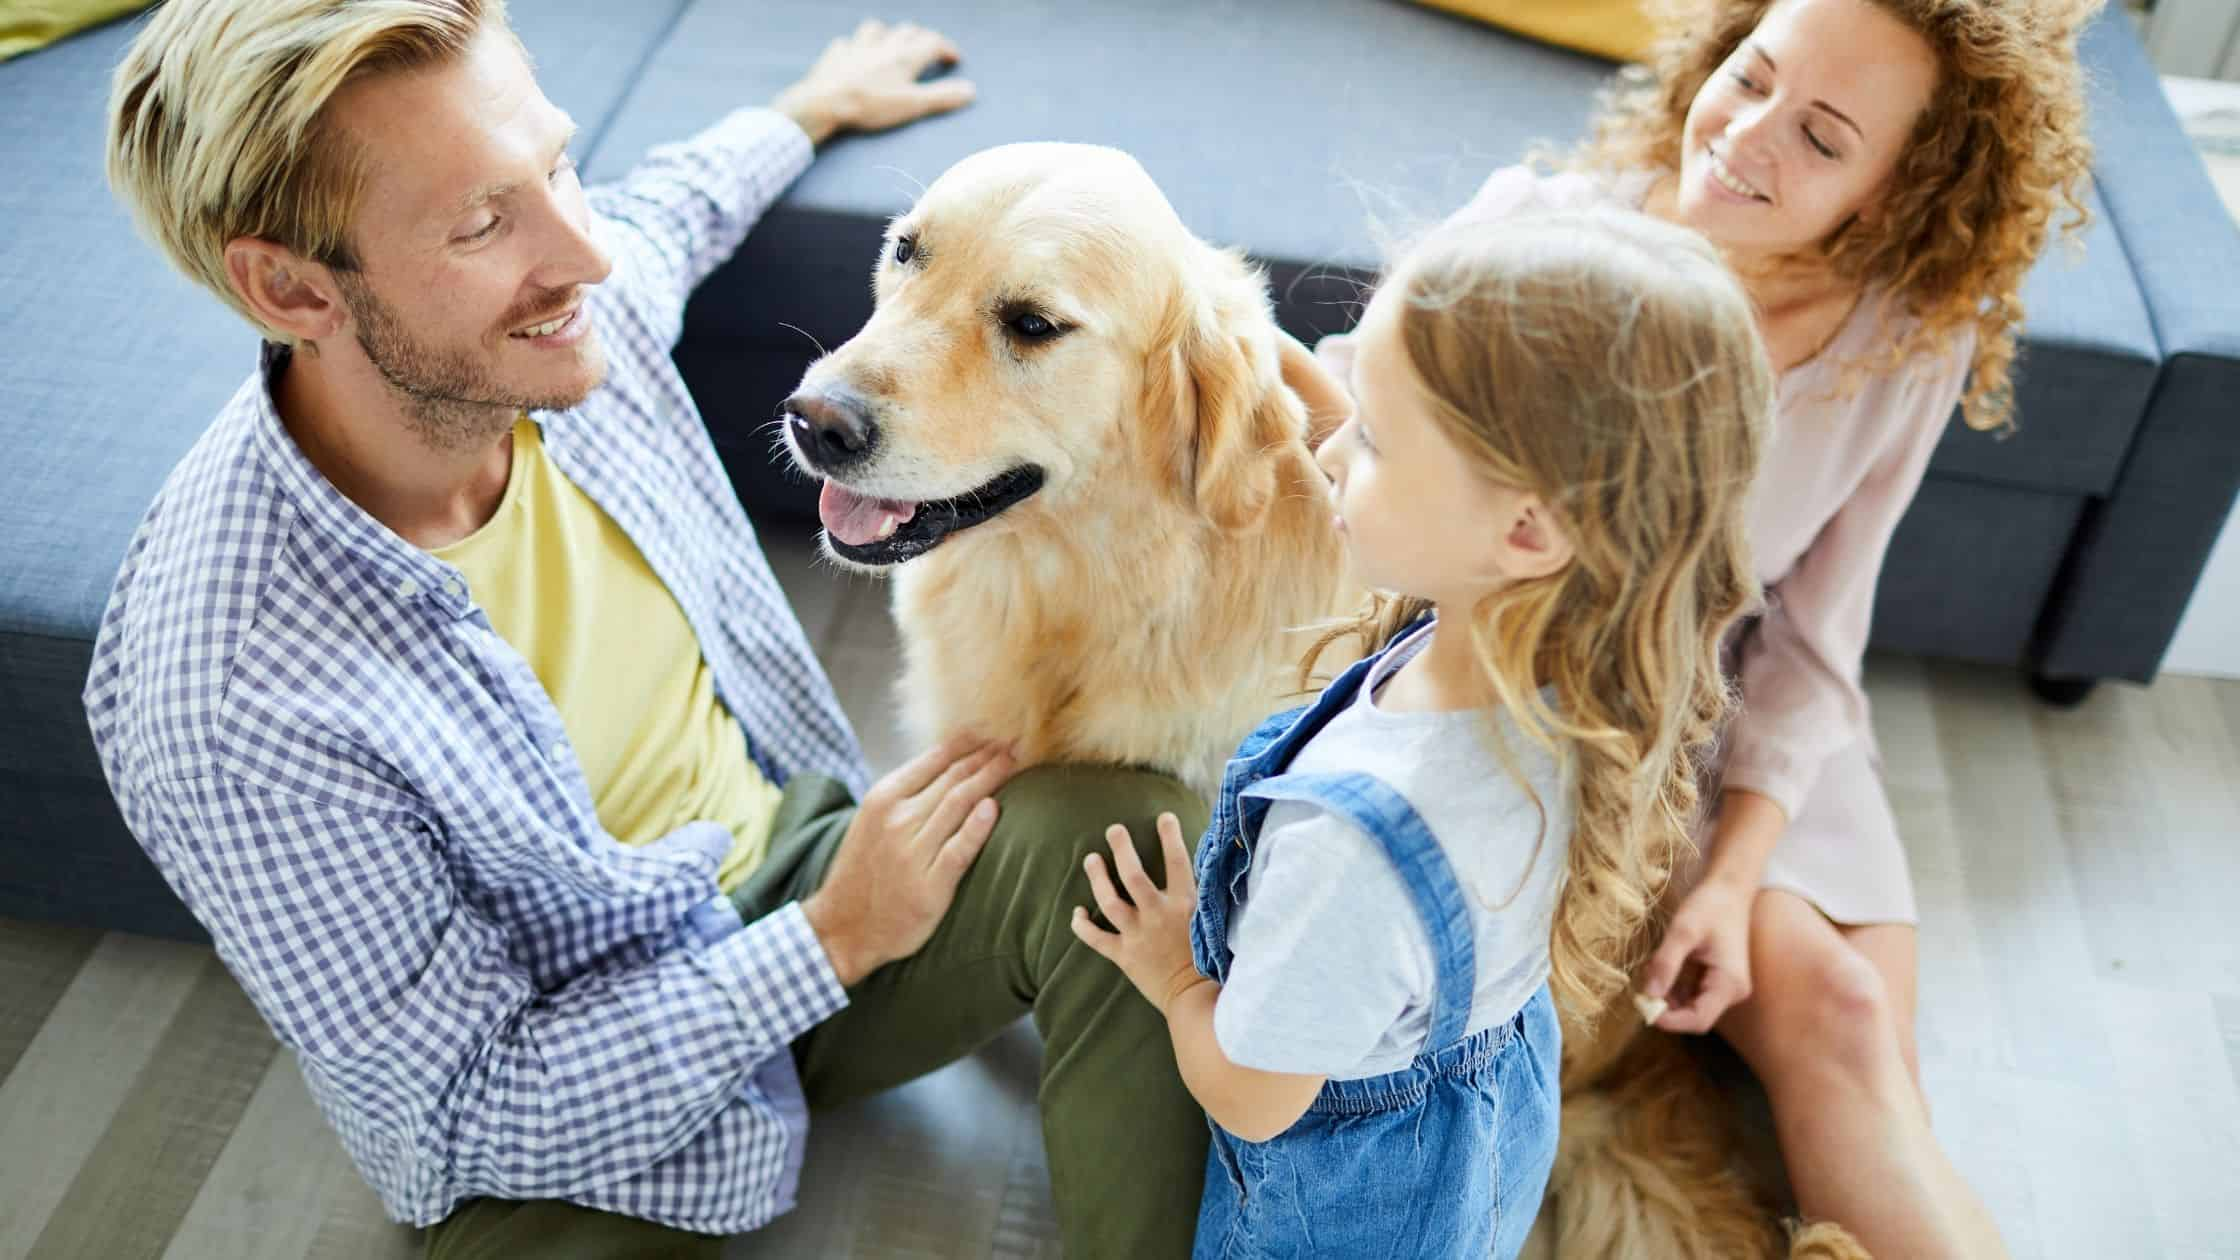 10 Best Dog Breeds for Families With Kids